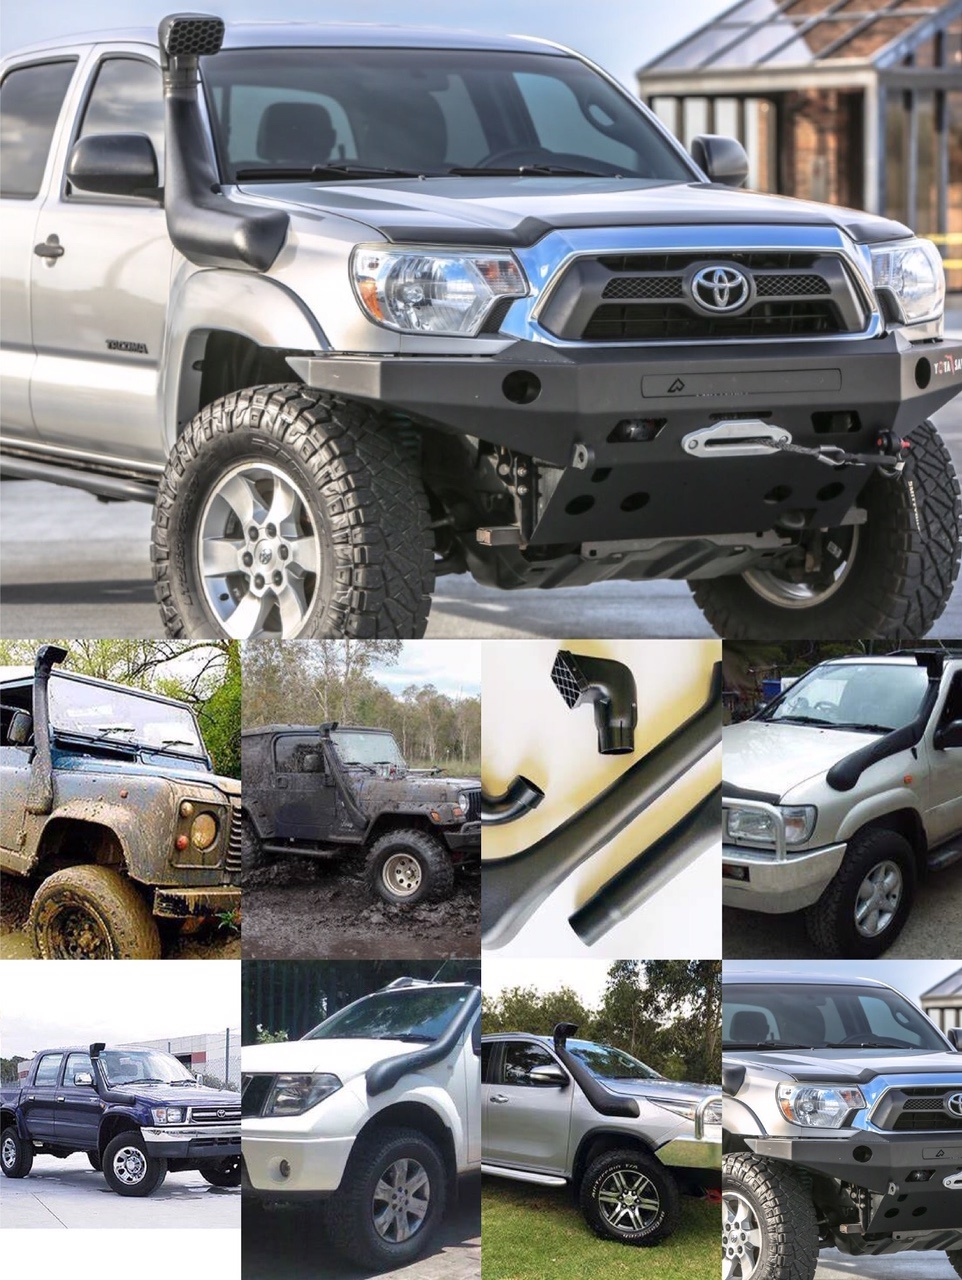 4x4 Off Road Car Snorkel Use For Nissan Navara D21 And D22 And D40 And Pathfinder R51 And Terrano 2 China Snorkels 4x4 Snorkels Made In China Com